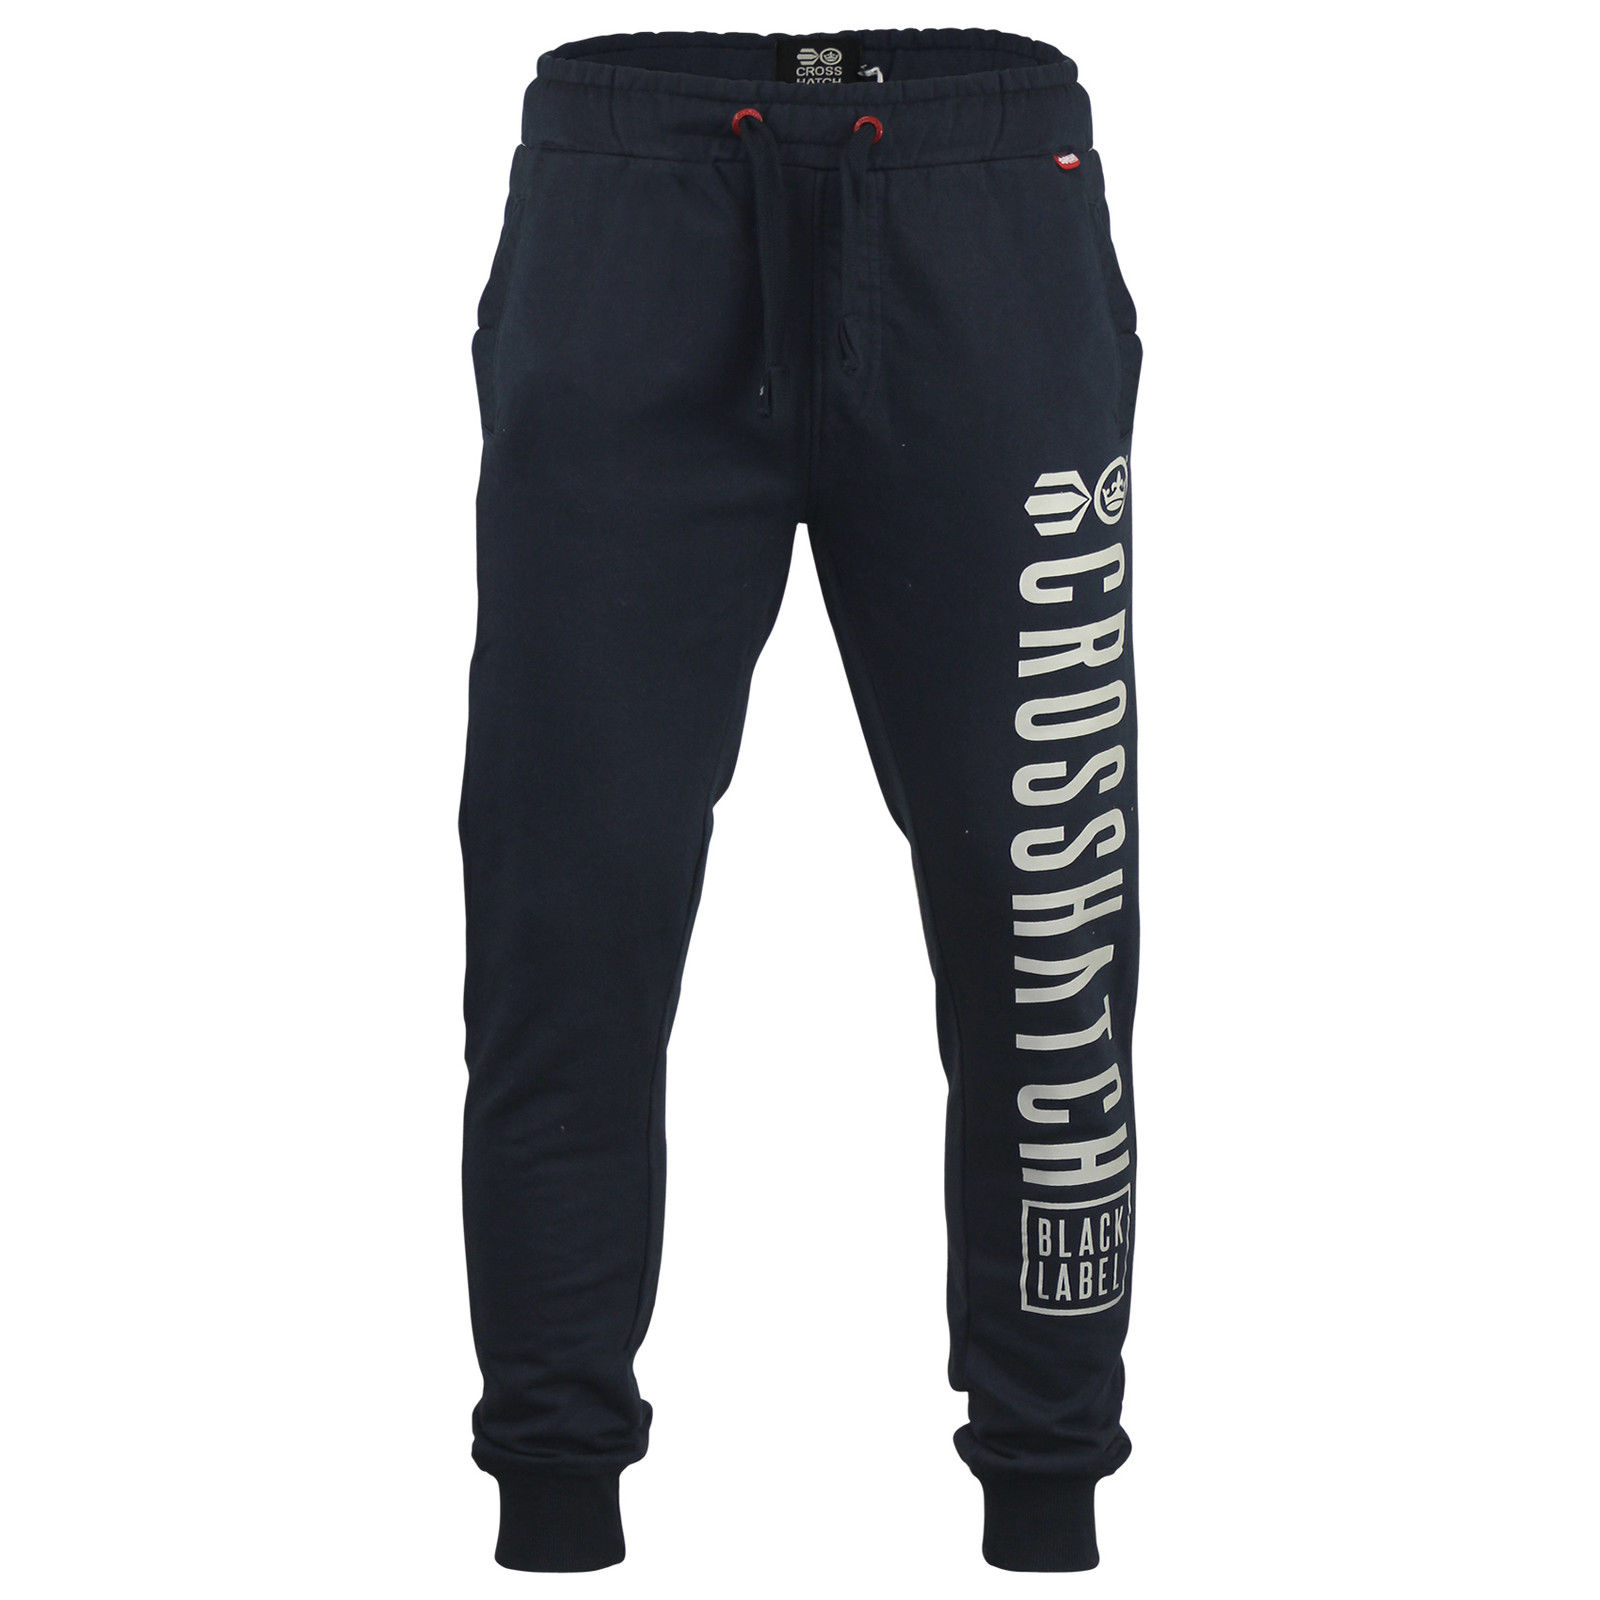 ASOS DESIGN Petite basic skinny joggers. £ Reclaimed vintage inspired cargo jogger with tipped cuff. £ Fila Tracksuit Bottoms With Large Front Logo In Colour Block Co-Ord. £ Juicy Couture Joggers With Logo And Lace Up Detail. £ Ted Baker Ted Says Relax Rayon Cuff Jogger.